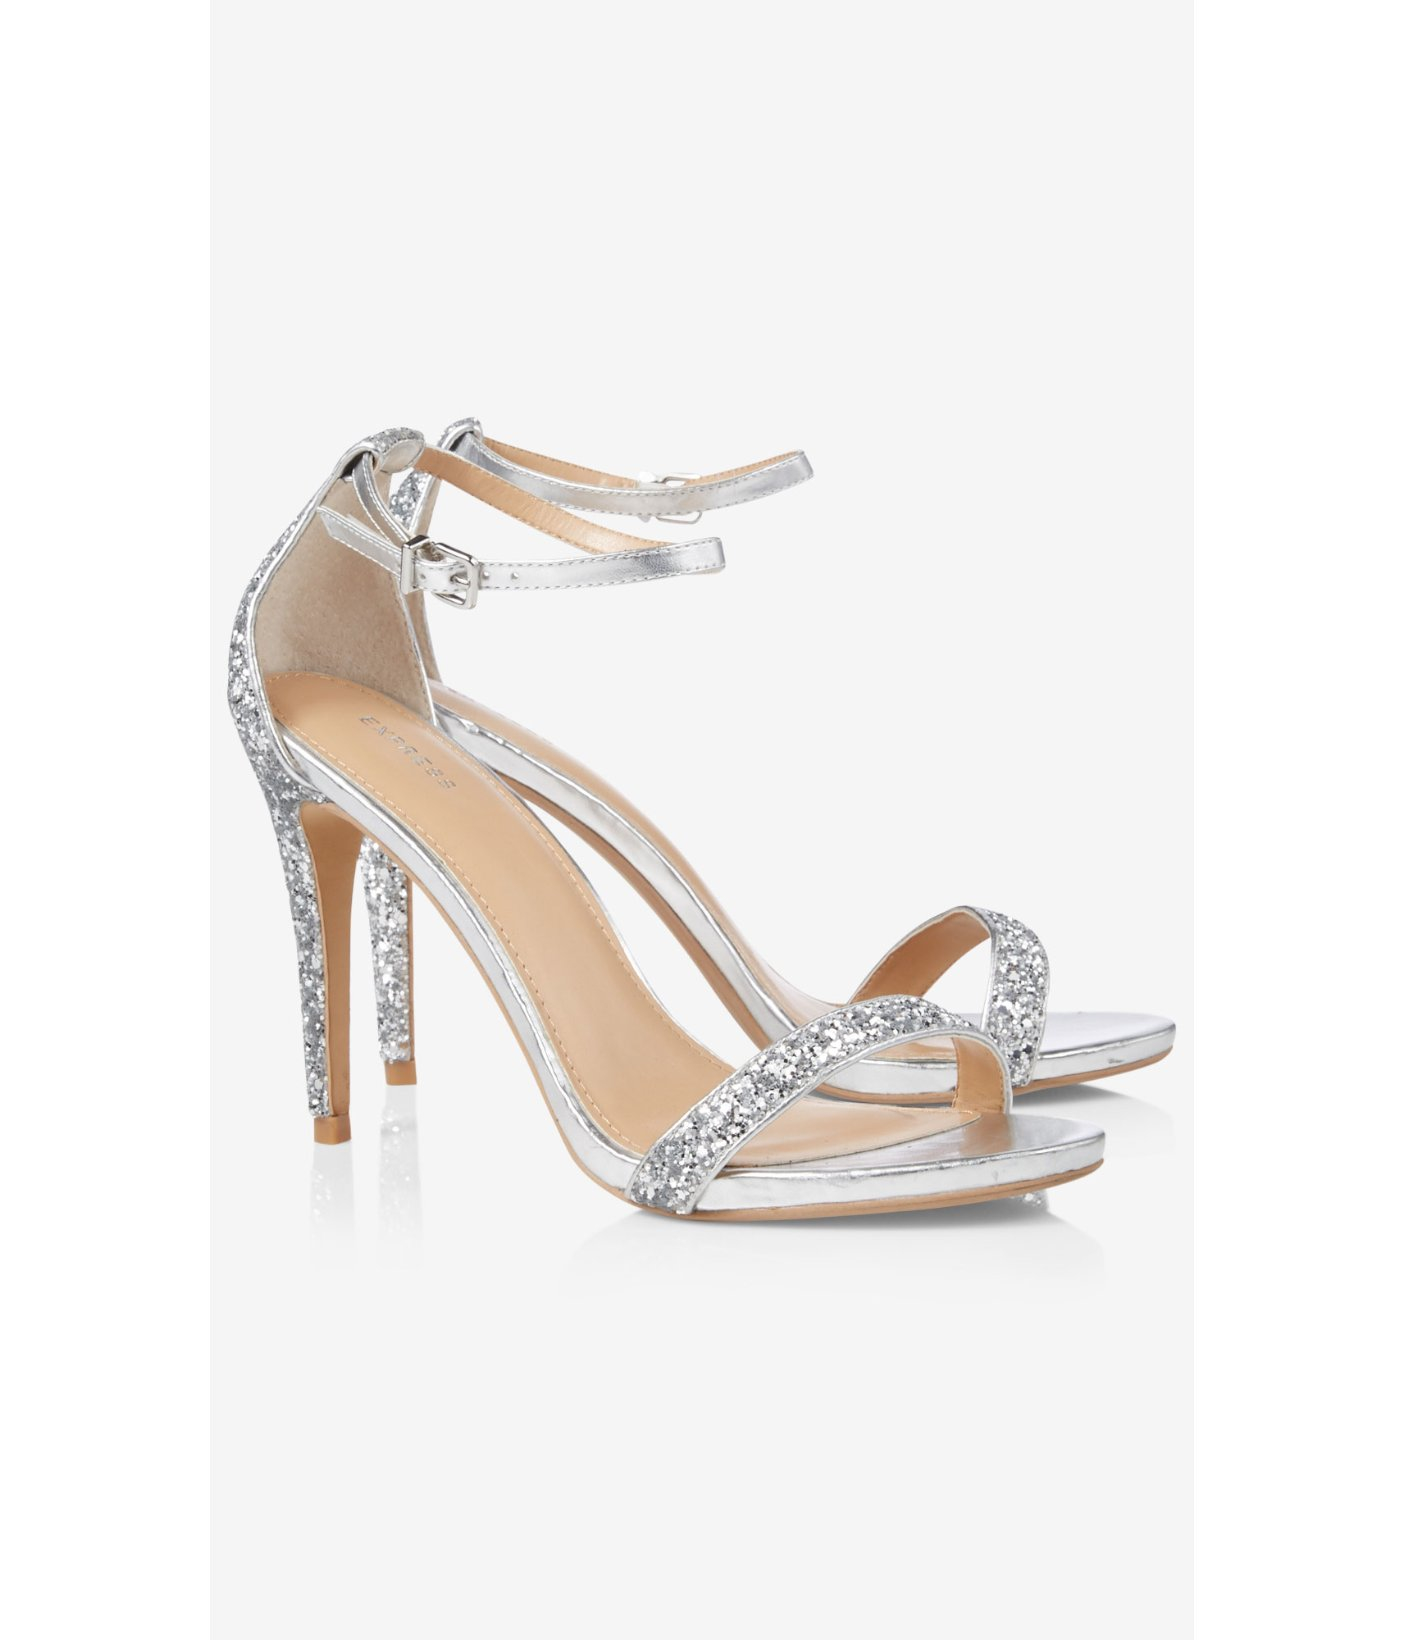 Lyst - Express Silver Glitter Sleek Heeled Sandal in Metallic